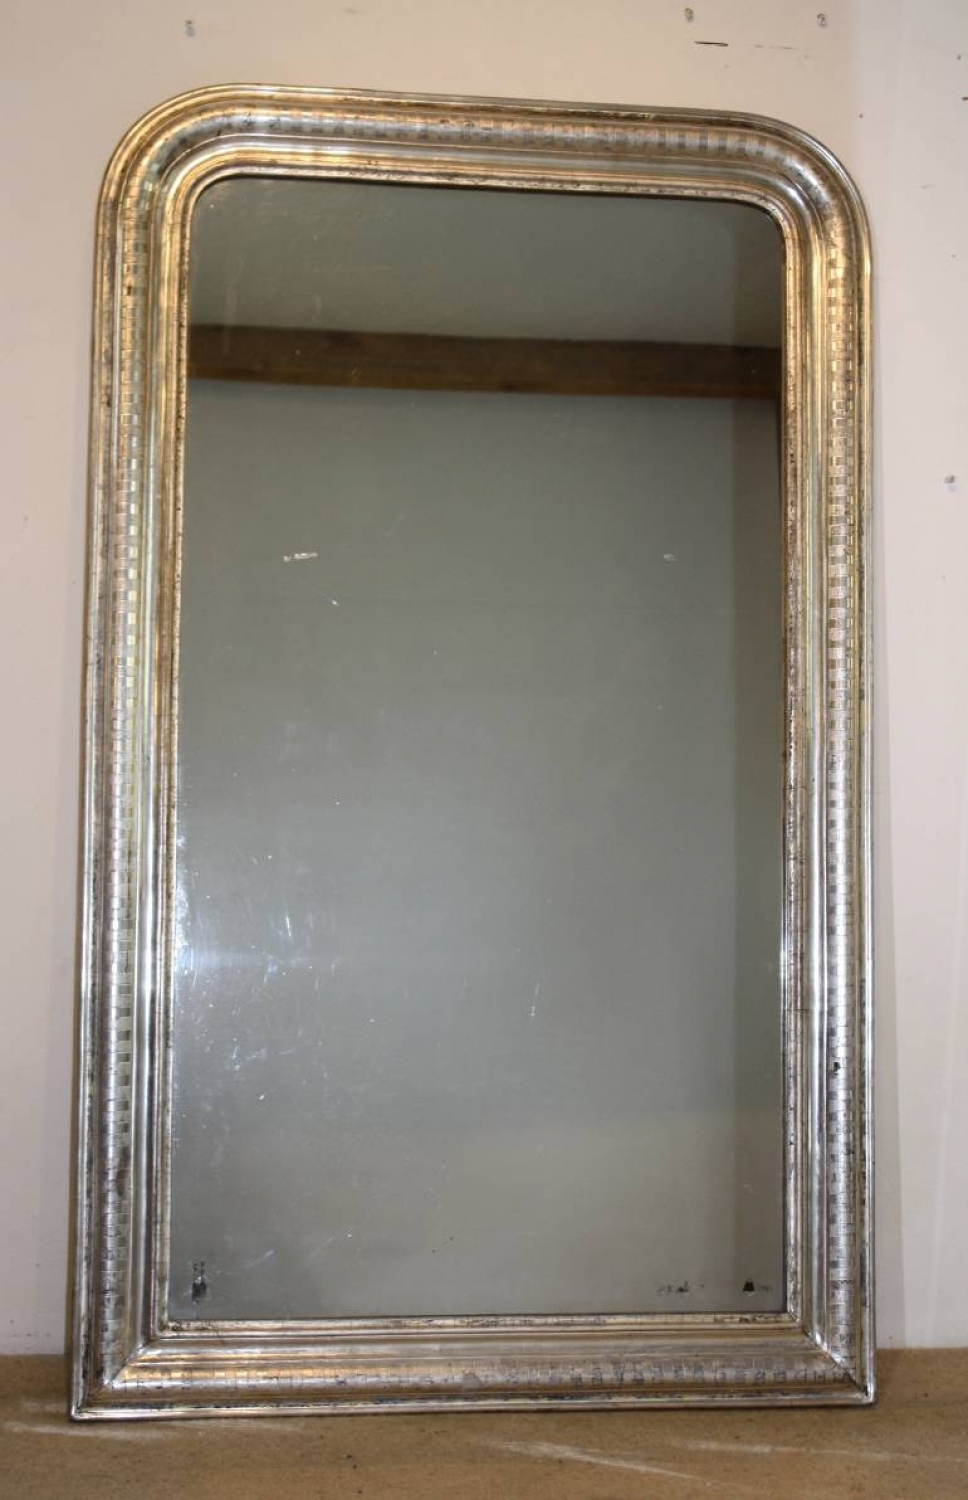 Singular Antique Mirrors Photos Concept Mirror1 Finegoodthings For In Antique Looking Mirrors For Sale (Image 11 of 15)